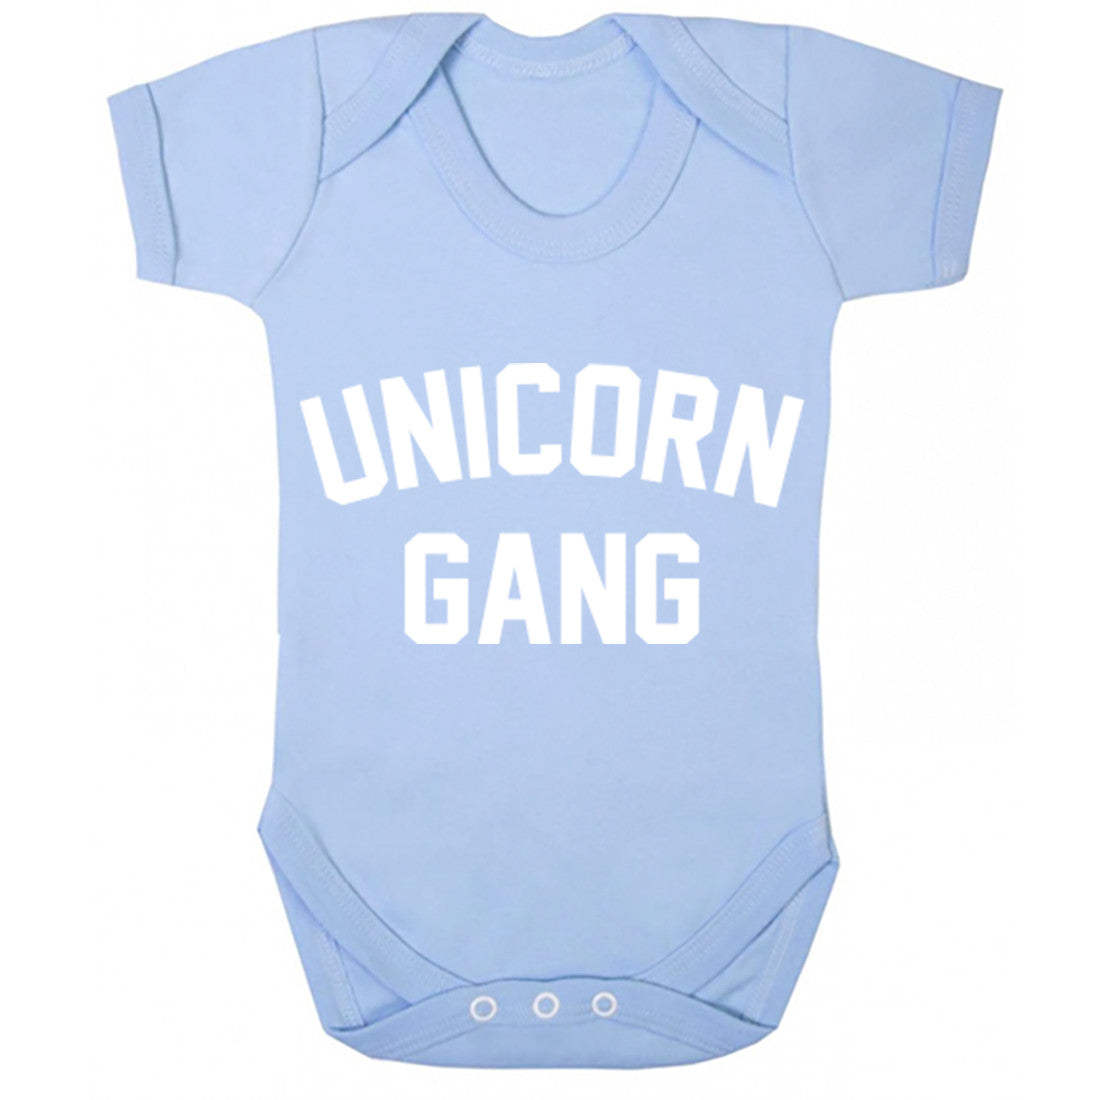 Unicorn Gang Baby Vest K0746 - Illustrated Identity Ltd.